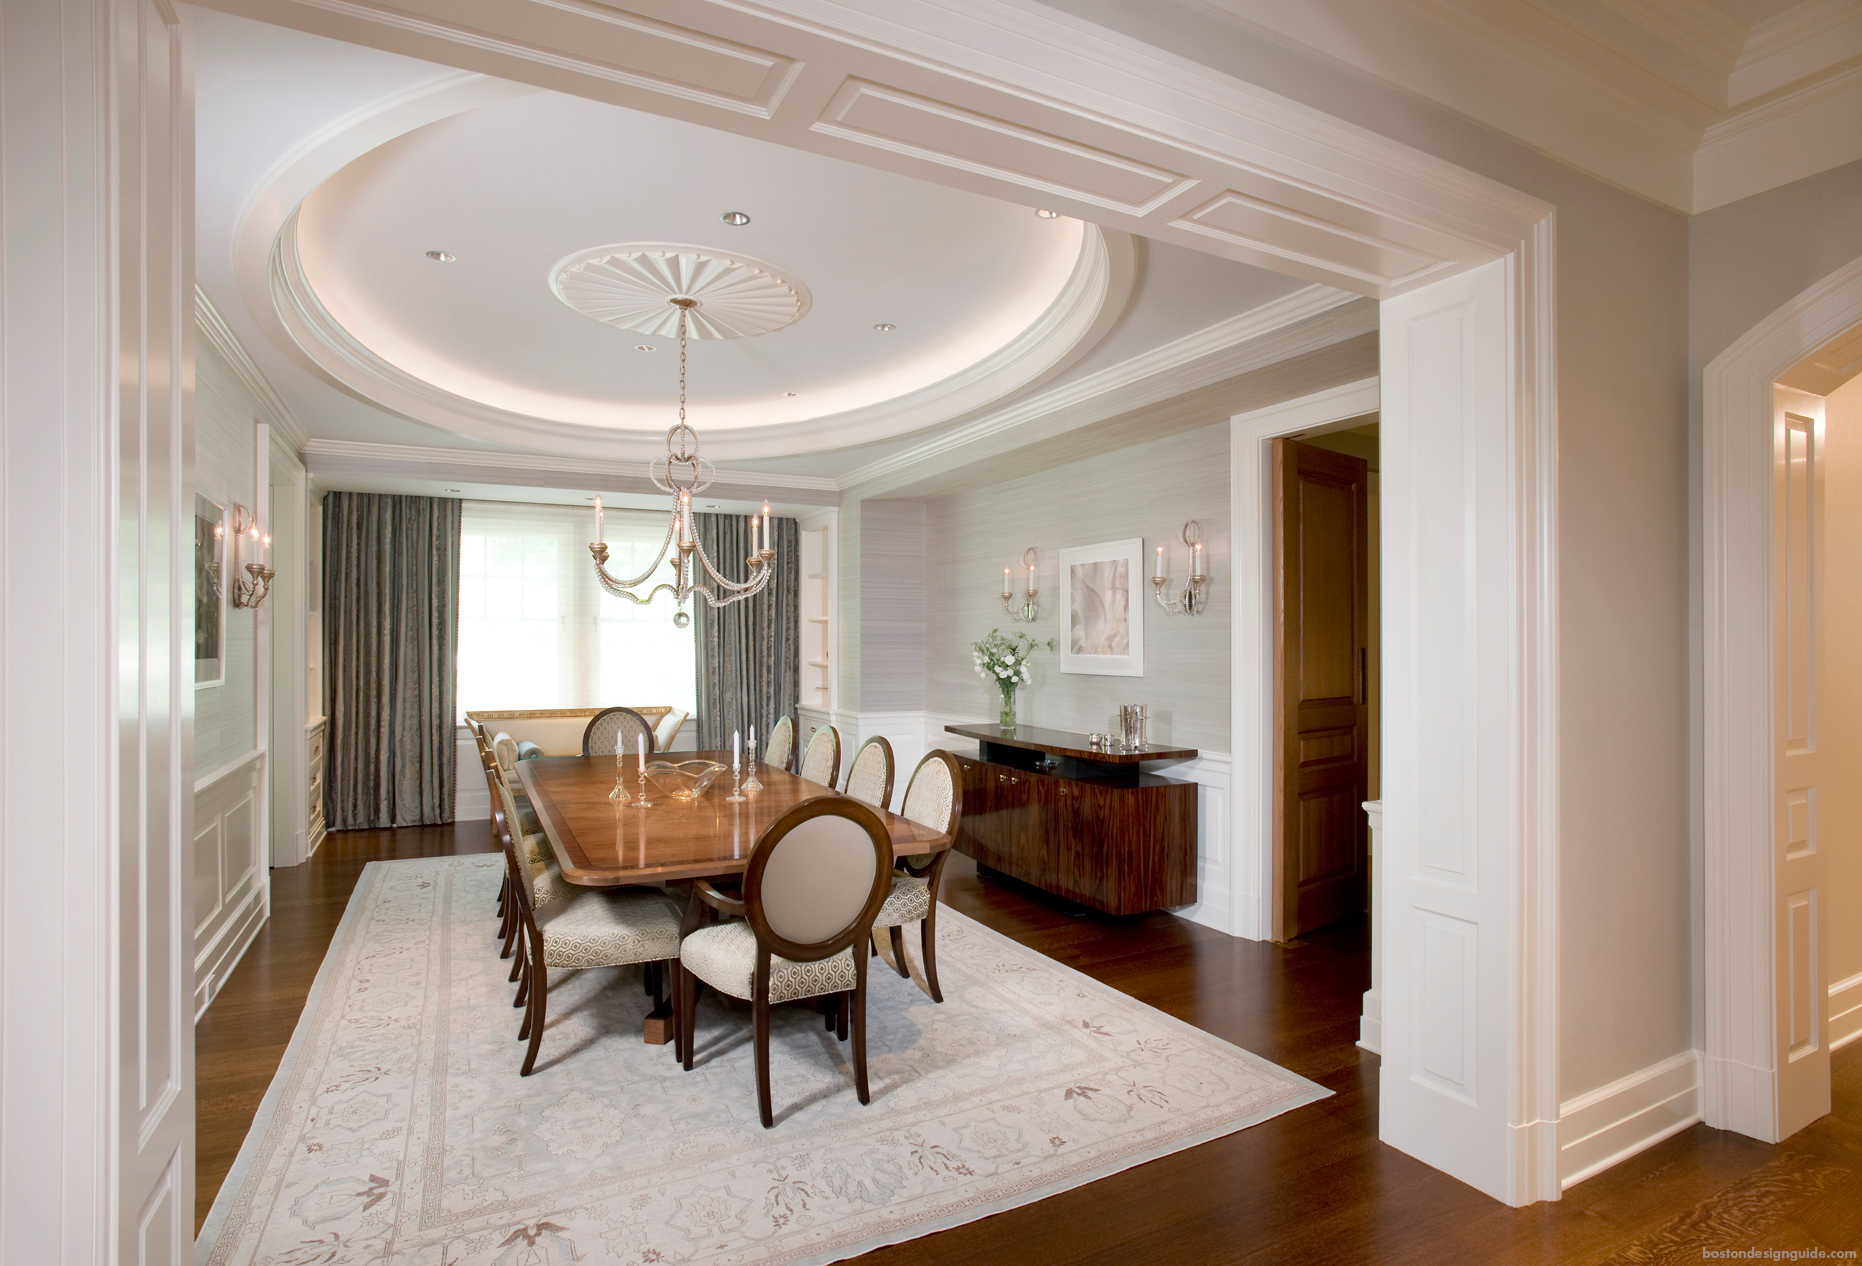 High End Interior Design Inspiration for residential Homes